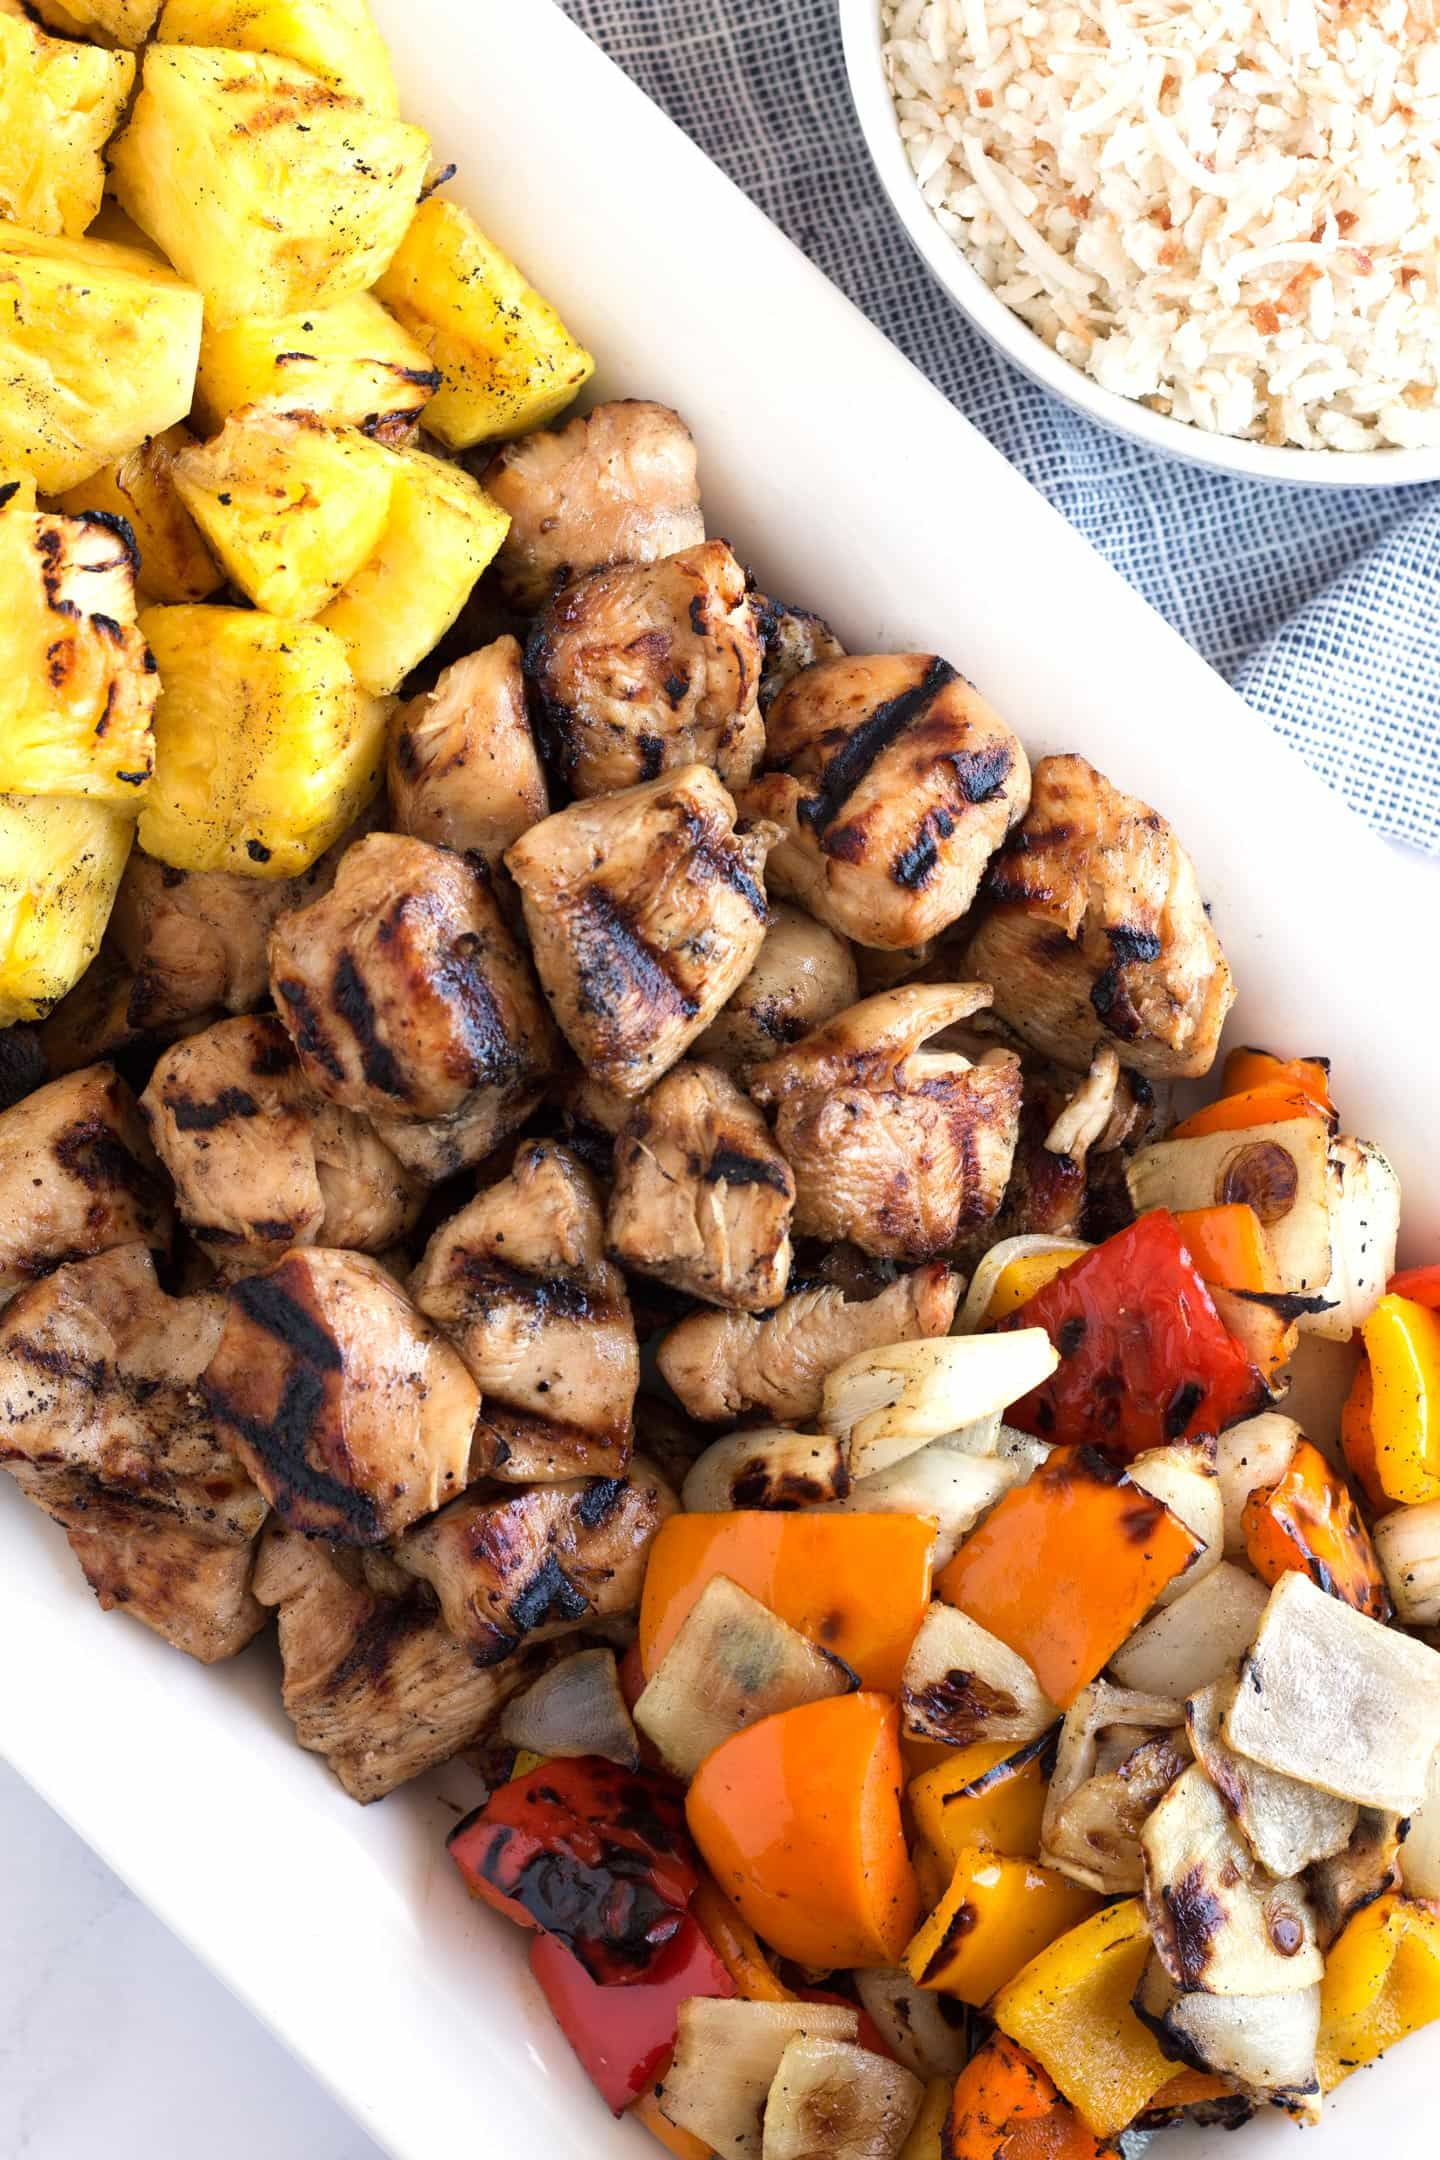 Overhead view of platter of grilled Honey Chicken Kabobs.